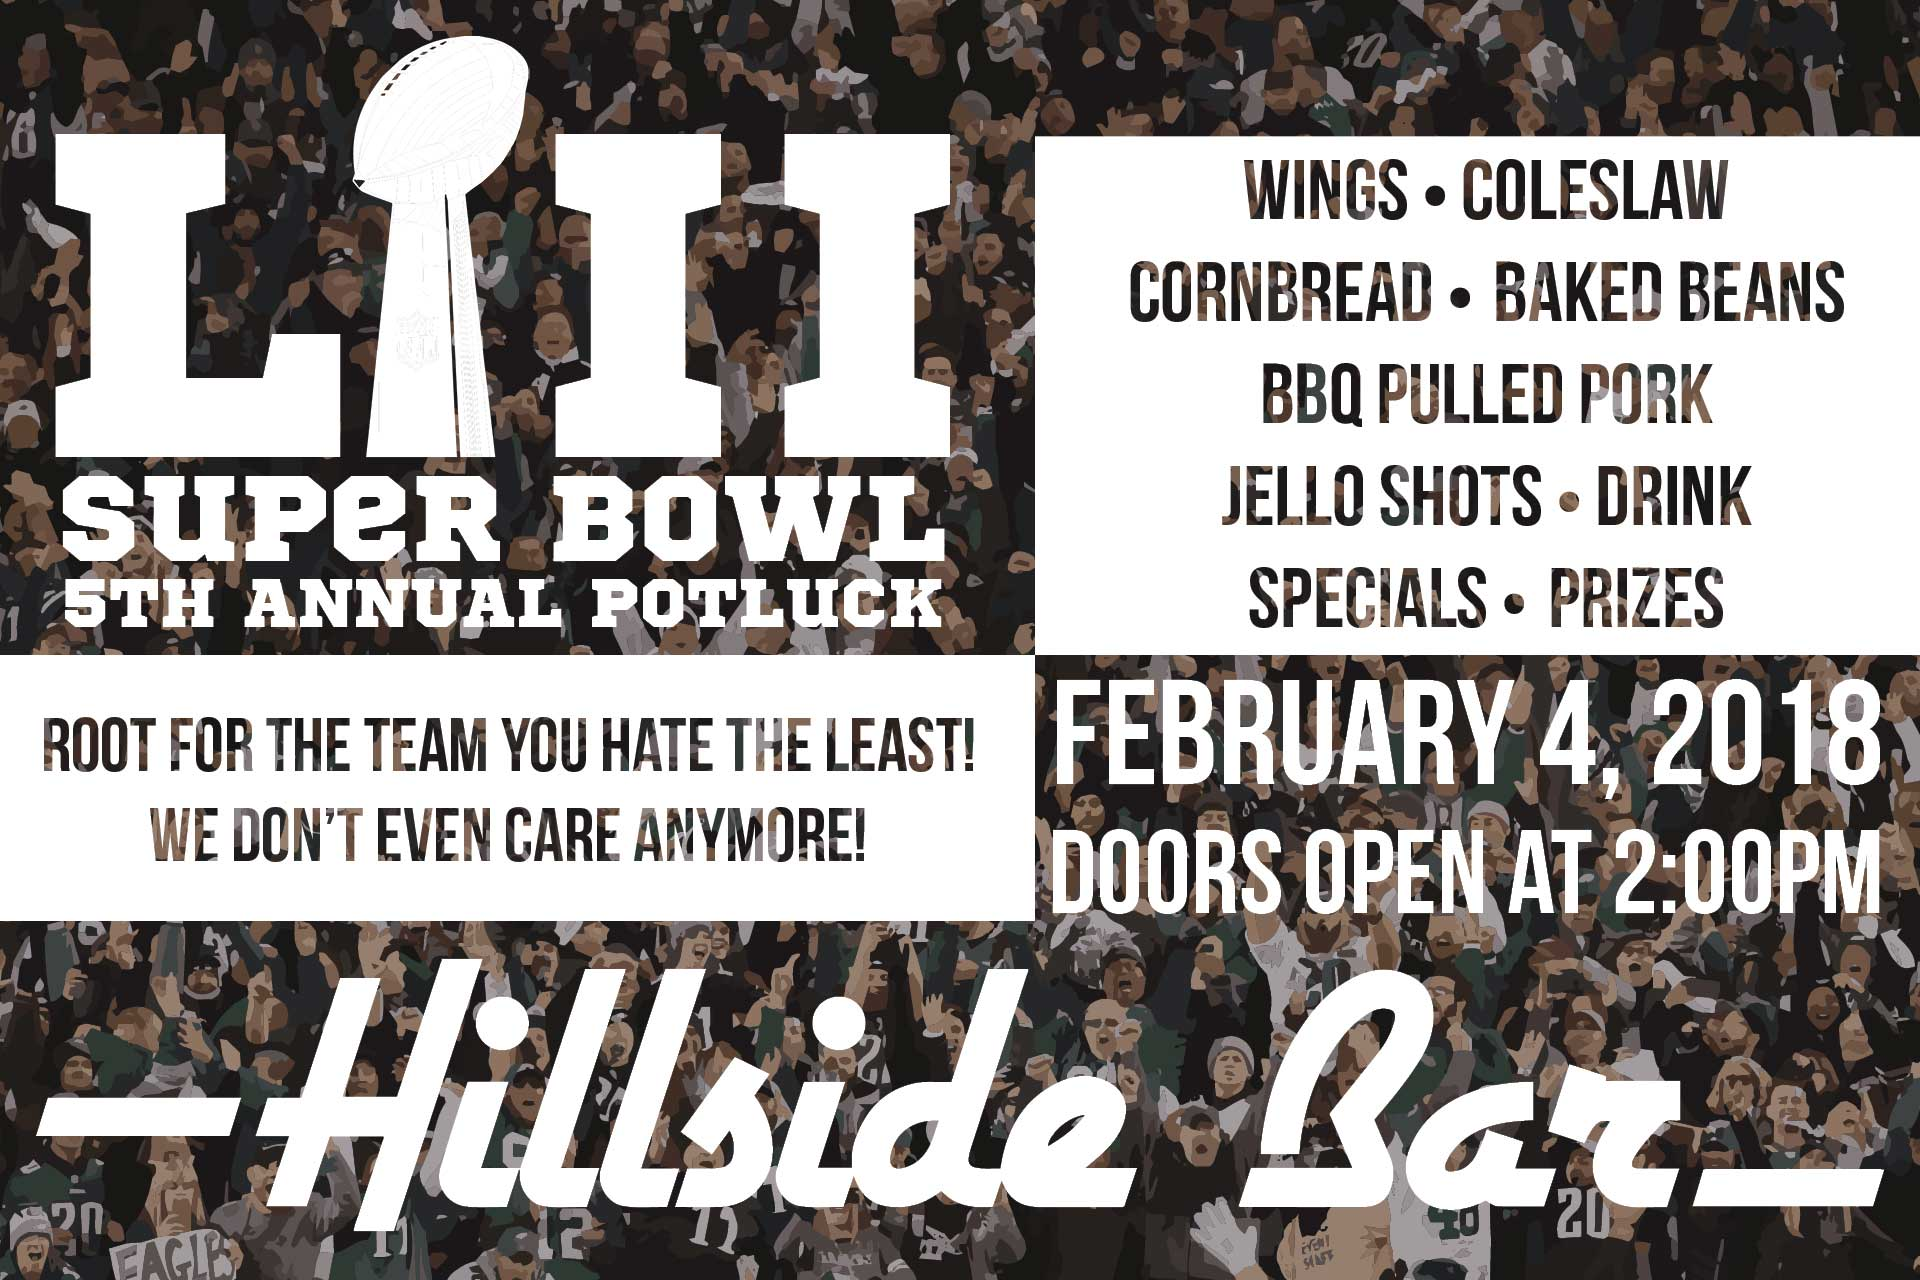 Hillside Superbowl Potluck